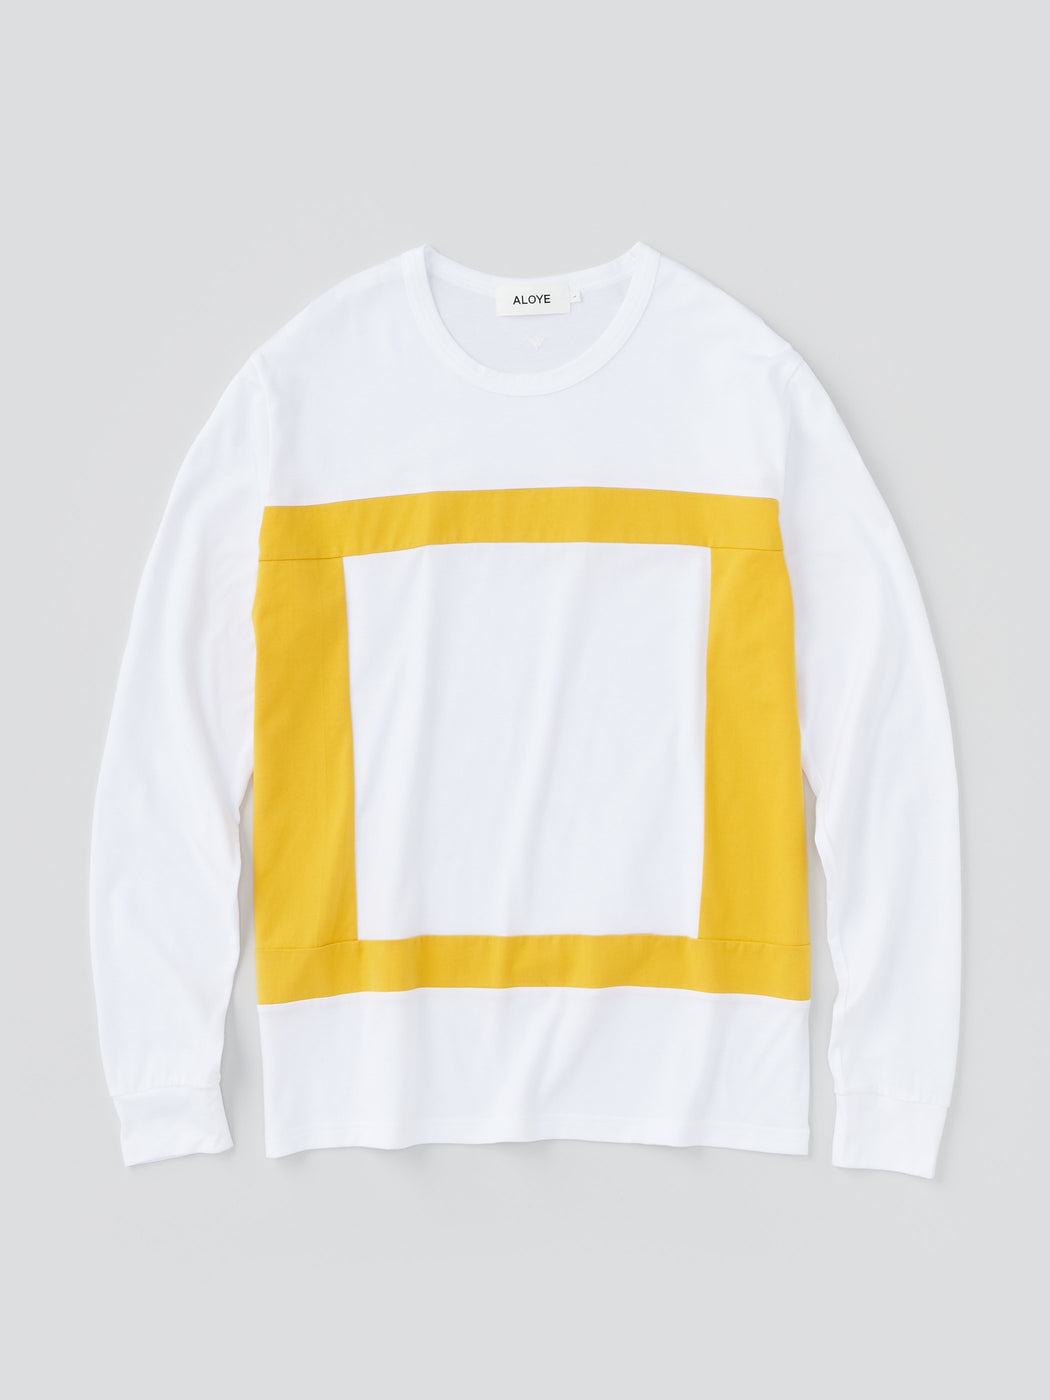 ALOYE Color Blocks Men's Long Sleeve T-shirt White Yellow